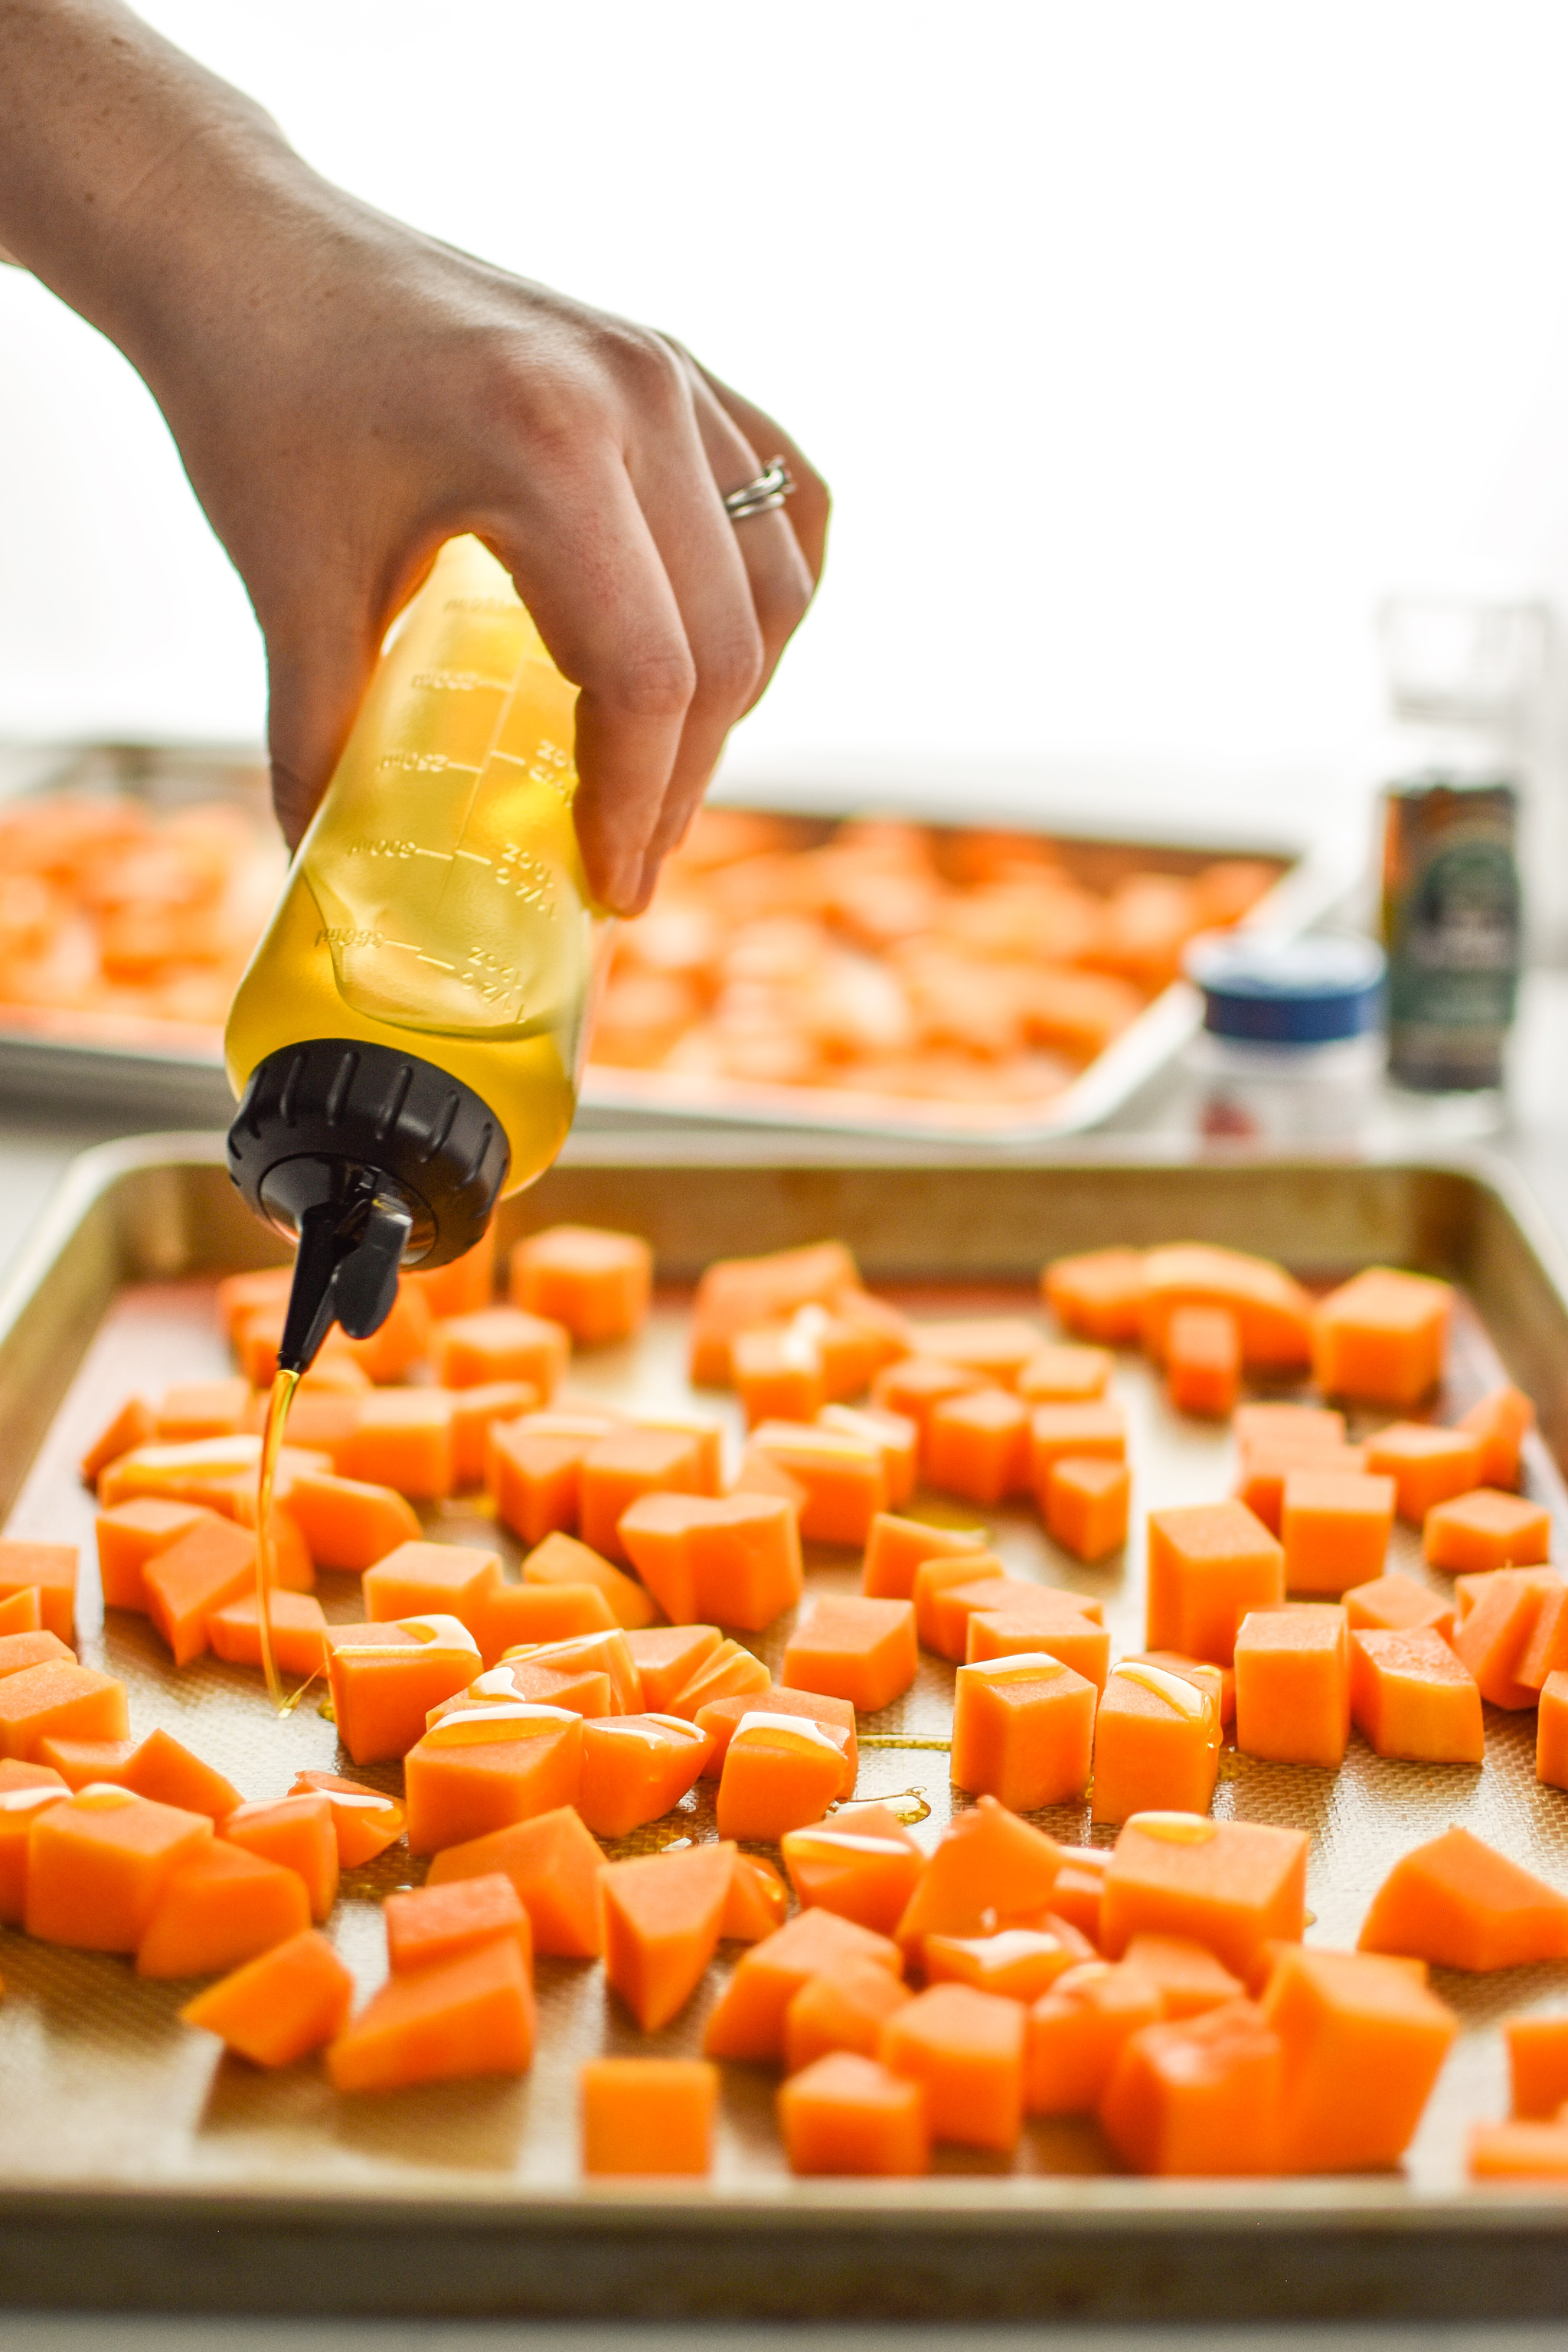 Using a chef squeeze bottle to add oil to the roasted butternut squash